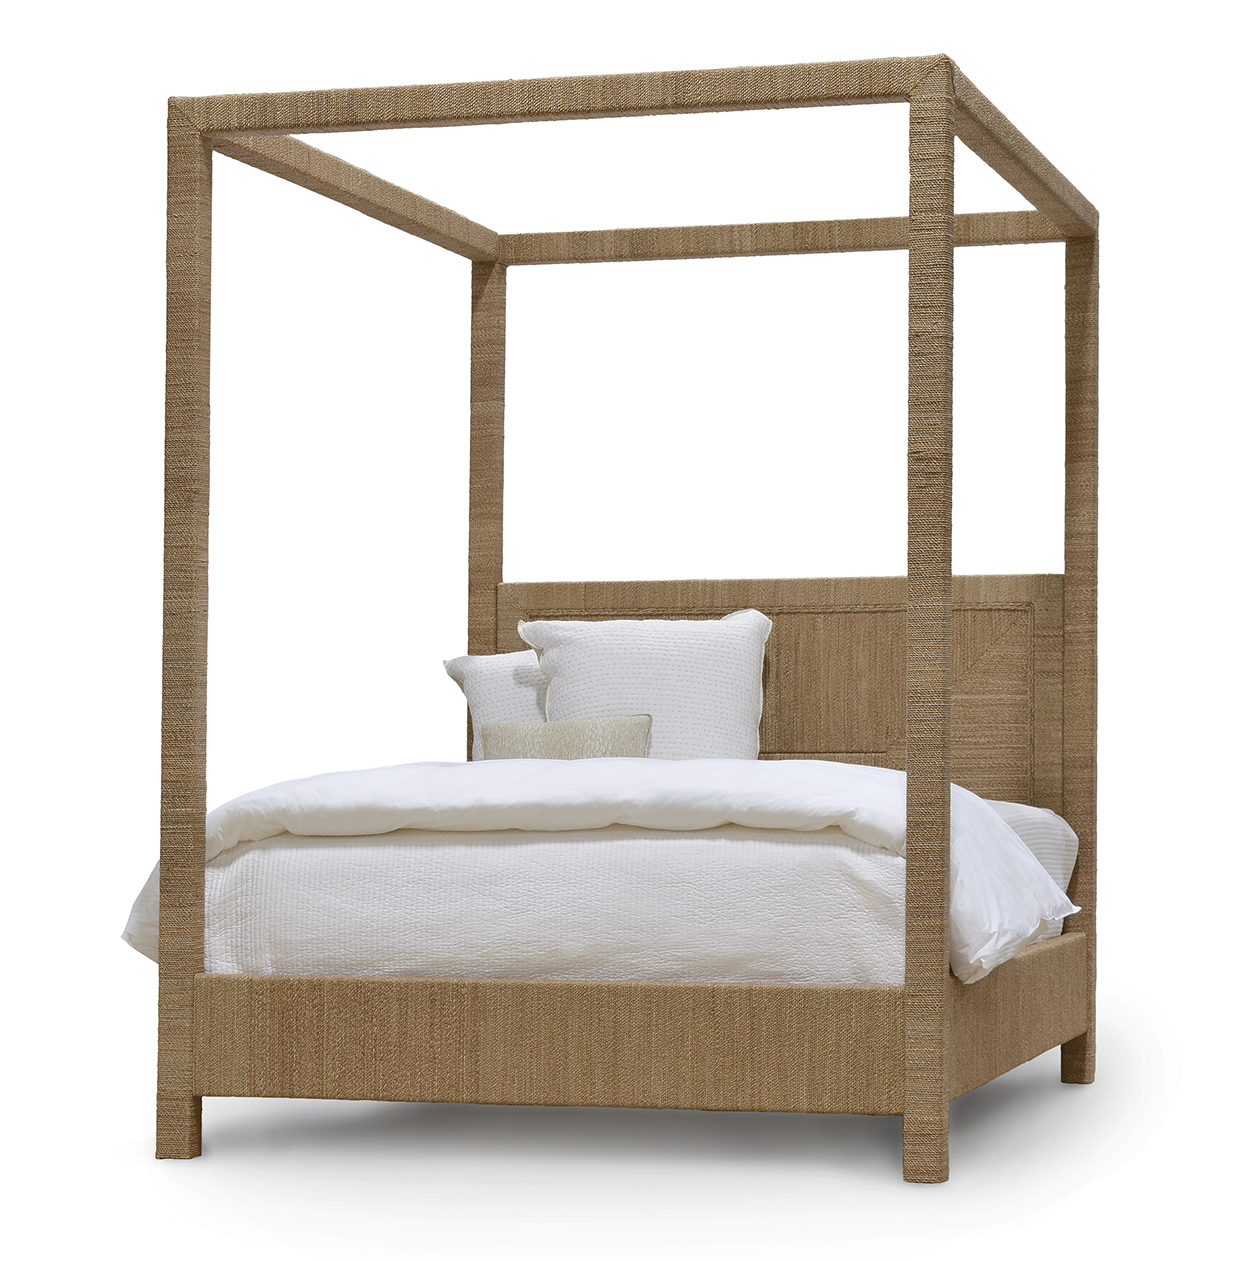 Palecek-Jeffrey-Alan-Marks-Collection-Woodside-canopy-bed